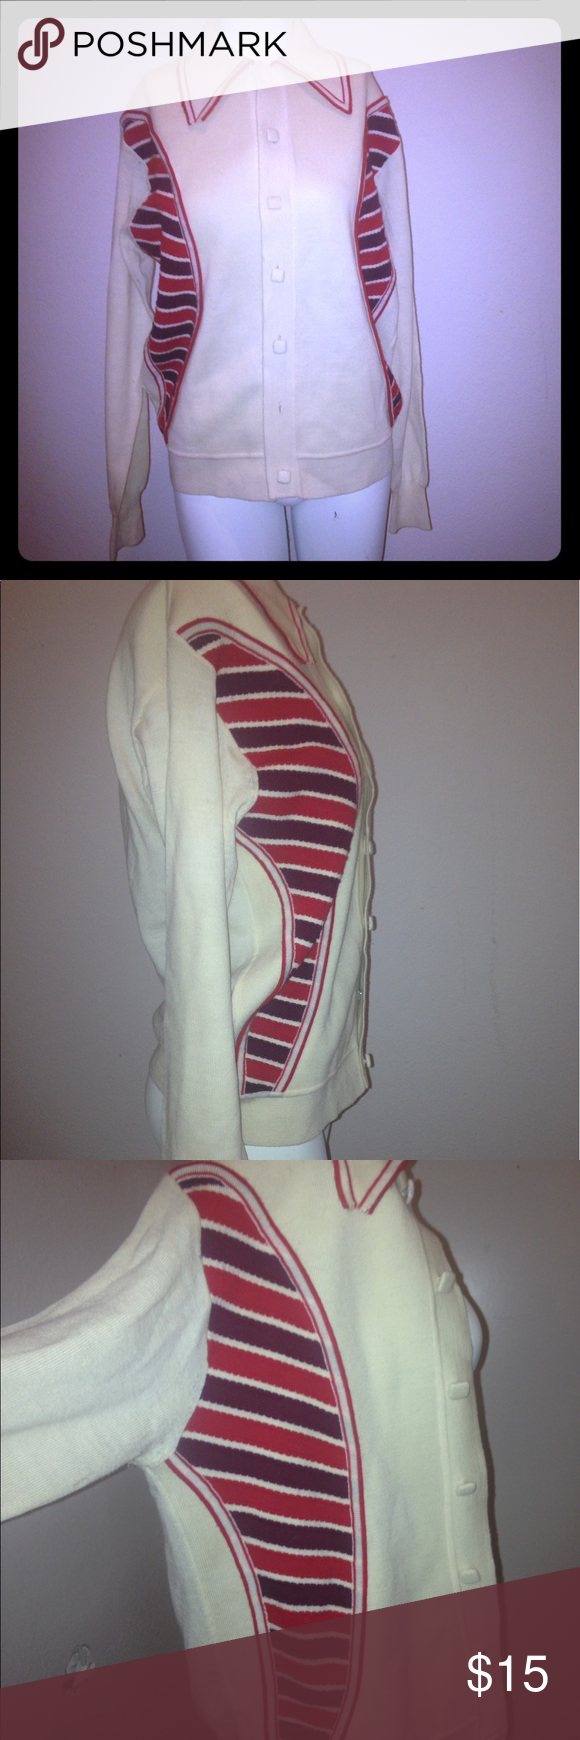 Mario Ricco vintage cardigan Mario Ricco vintage cardigan   Beautiful classic vintage cardigan  100% virgin wool   SIZE- M.   But will fit large  Missing one button Jackets & Coats